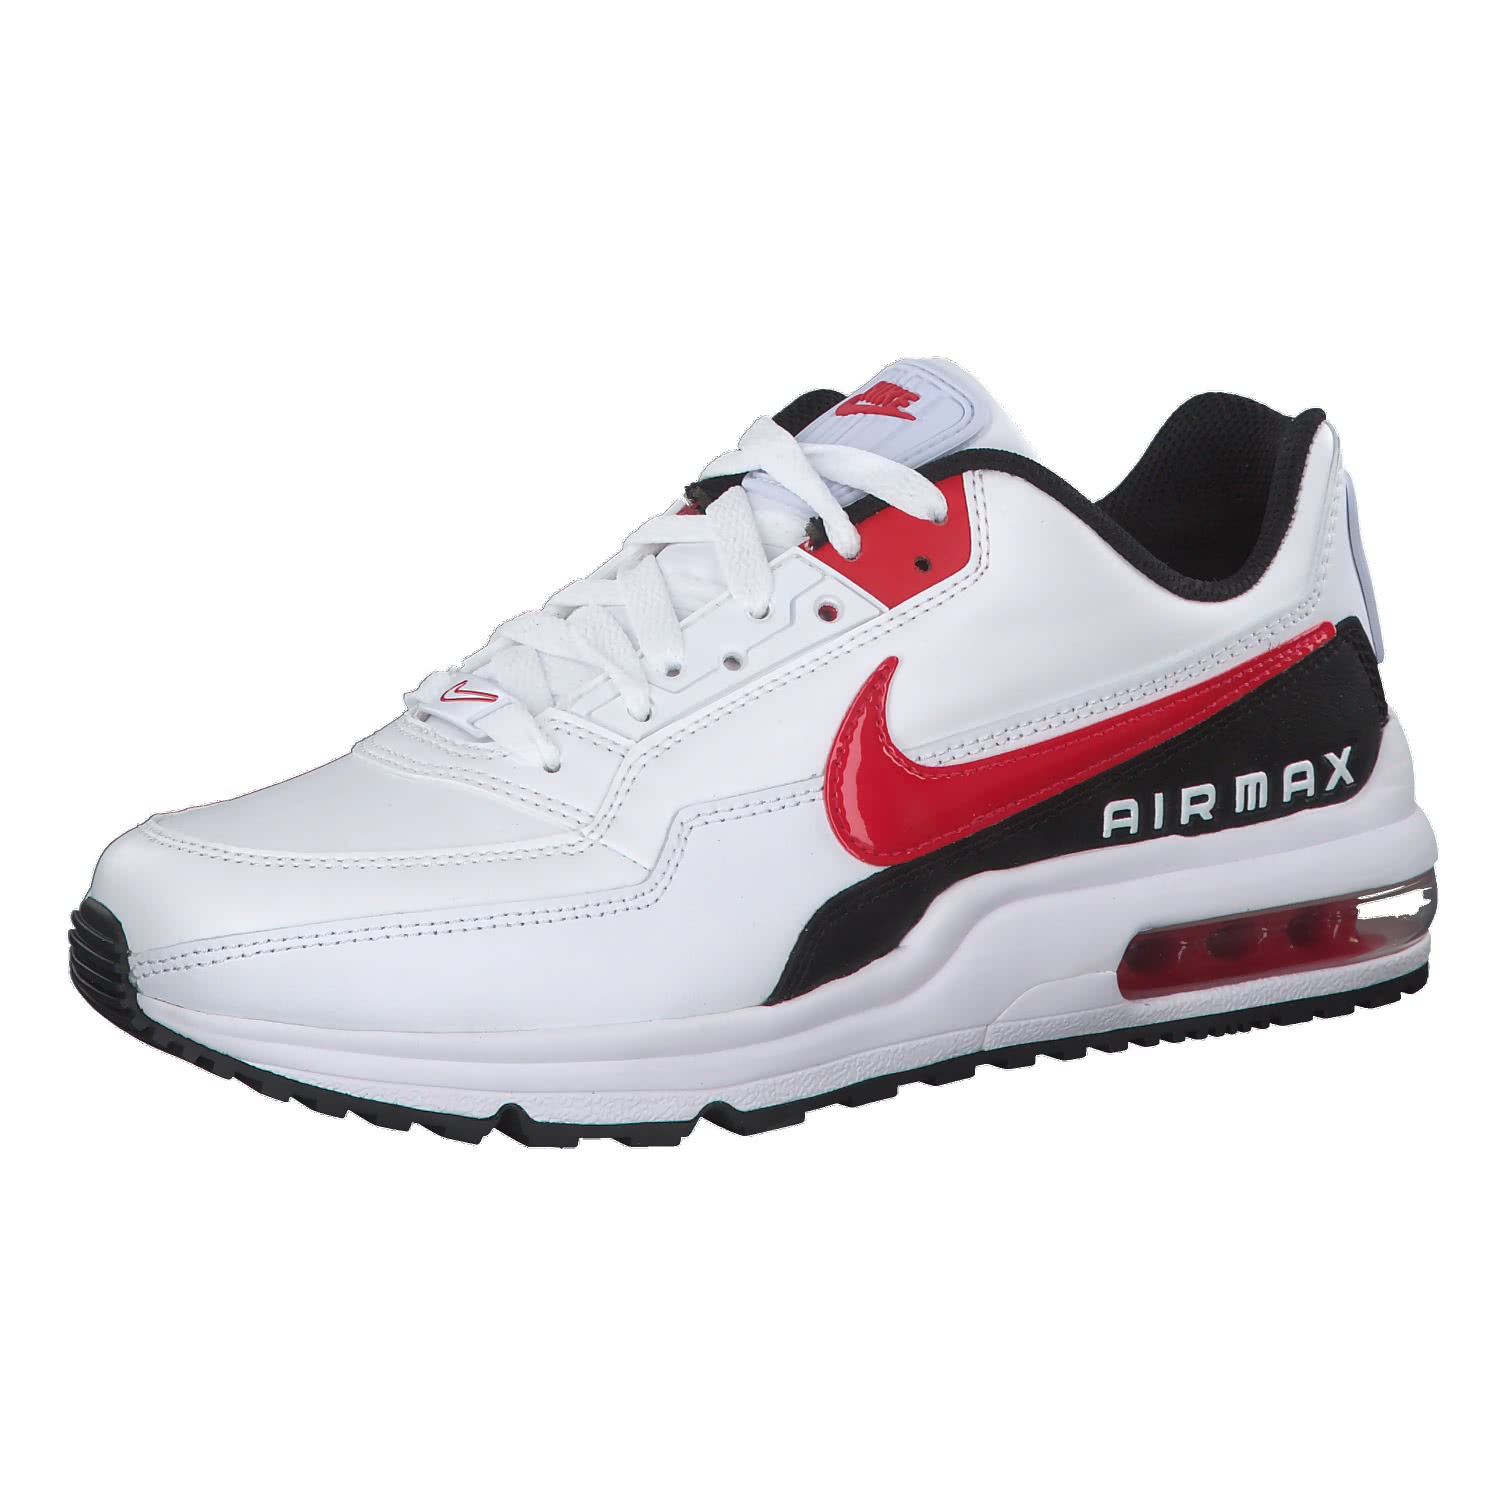 Nike Herren Sneaker Air Max LTD 3 BV1171 |